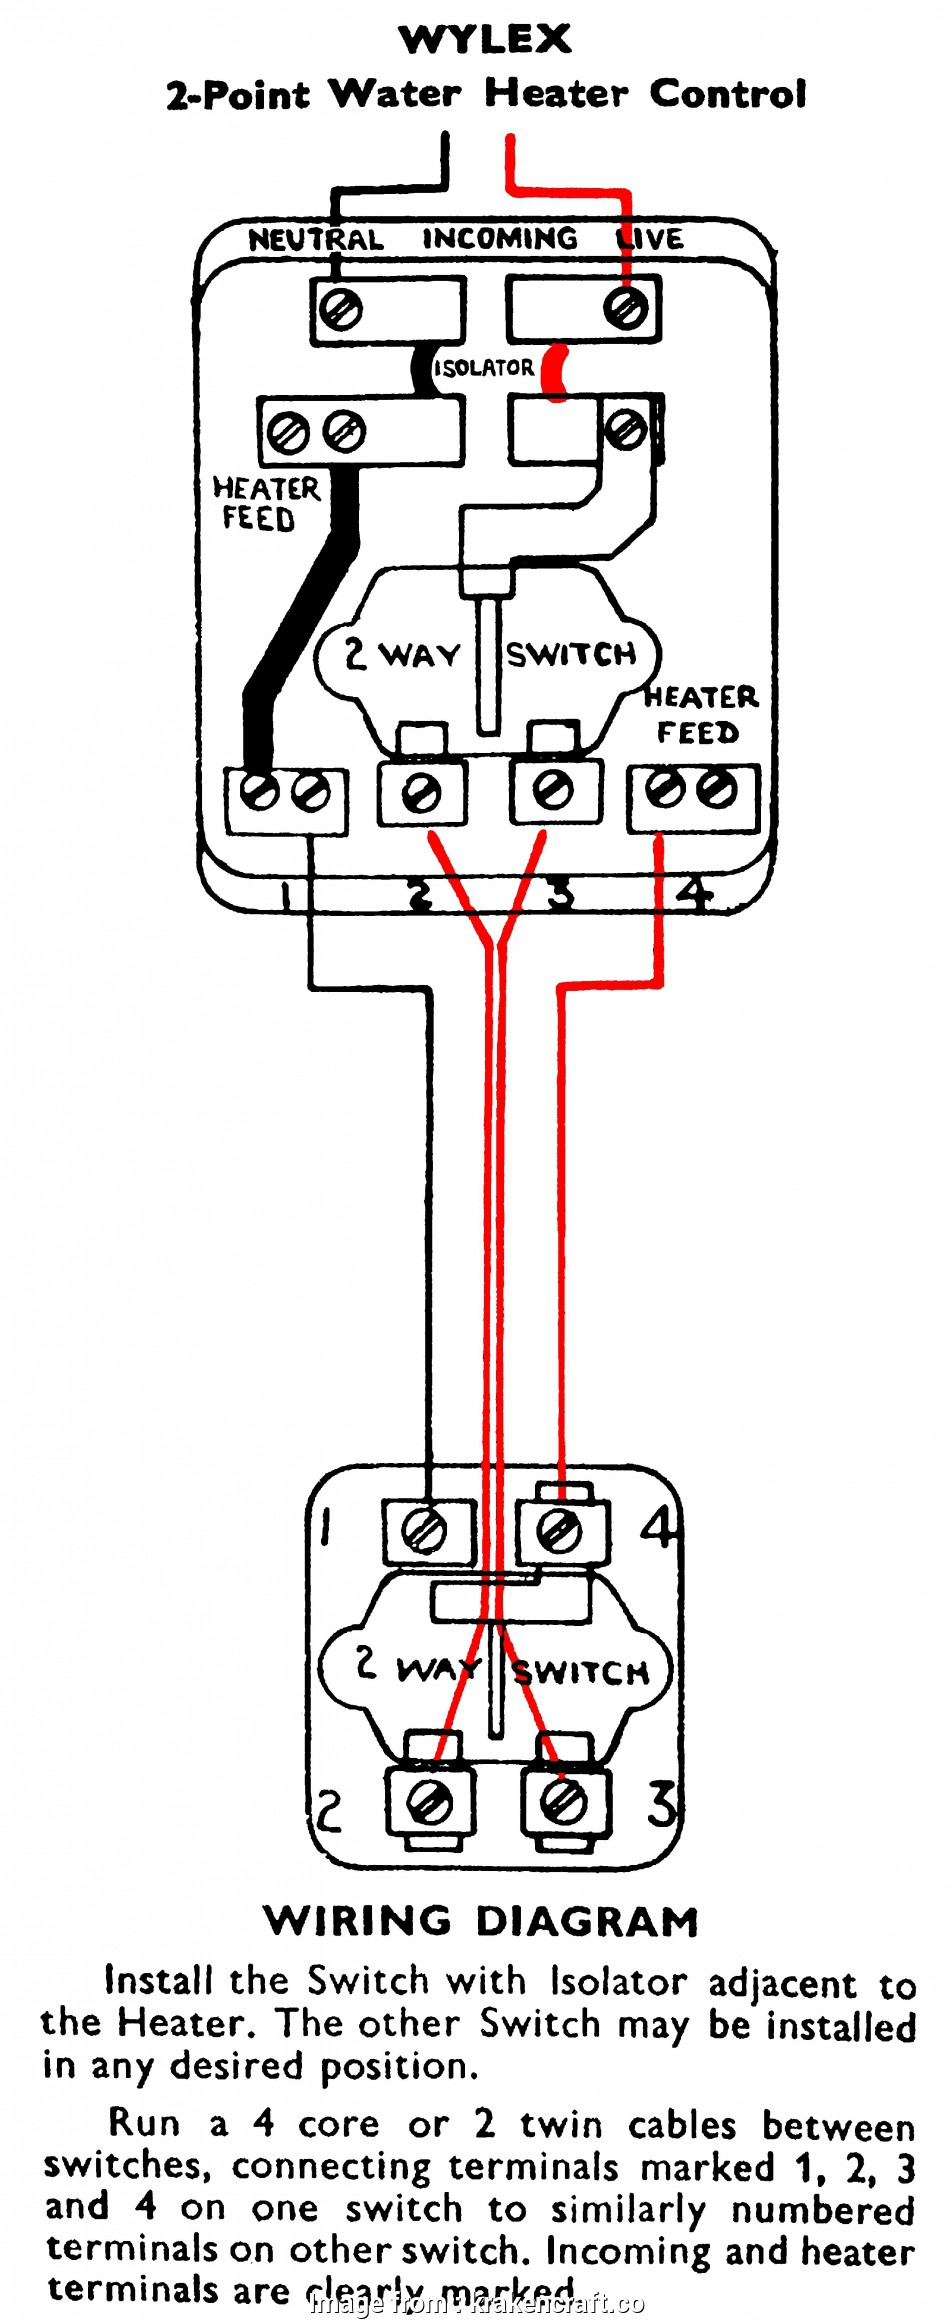 Electric Water Heater Wiring Brilliant Wiring Diagram  3 Phase Immersion Heater  Water Heater